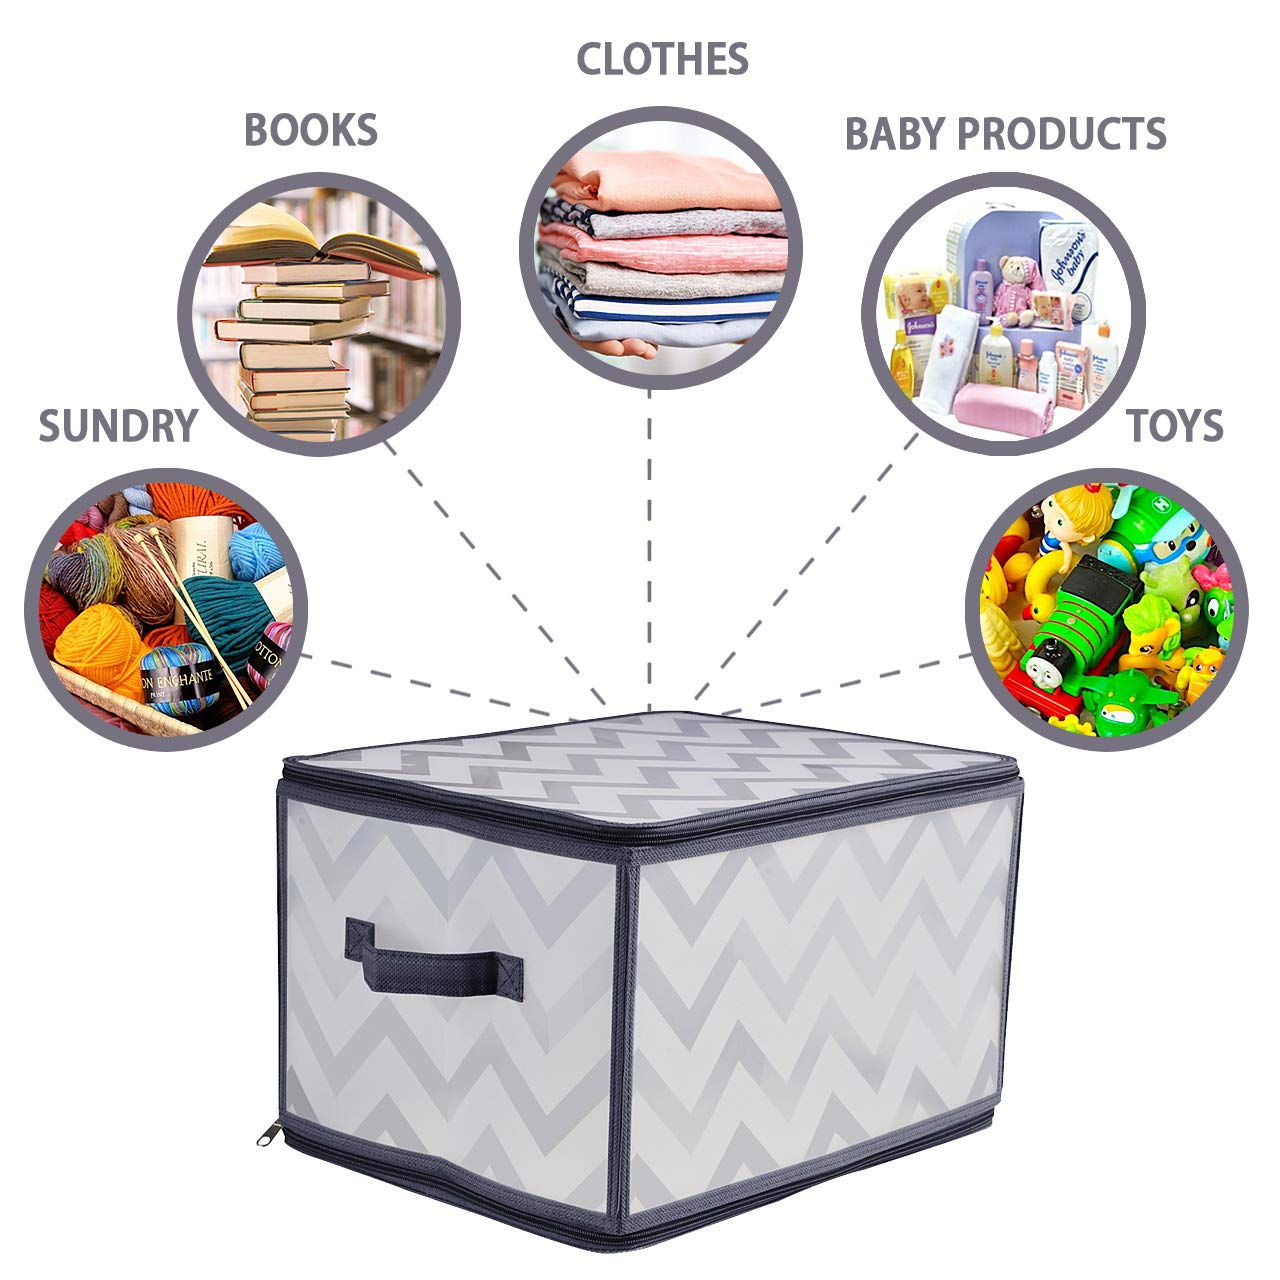 Collapsible Bins Baskets Box Cube for Home Closet Nursery Organizer Storage Container Medium 3 Pack BrightyHome